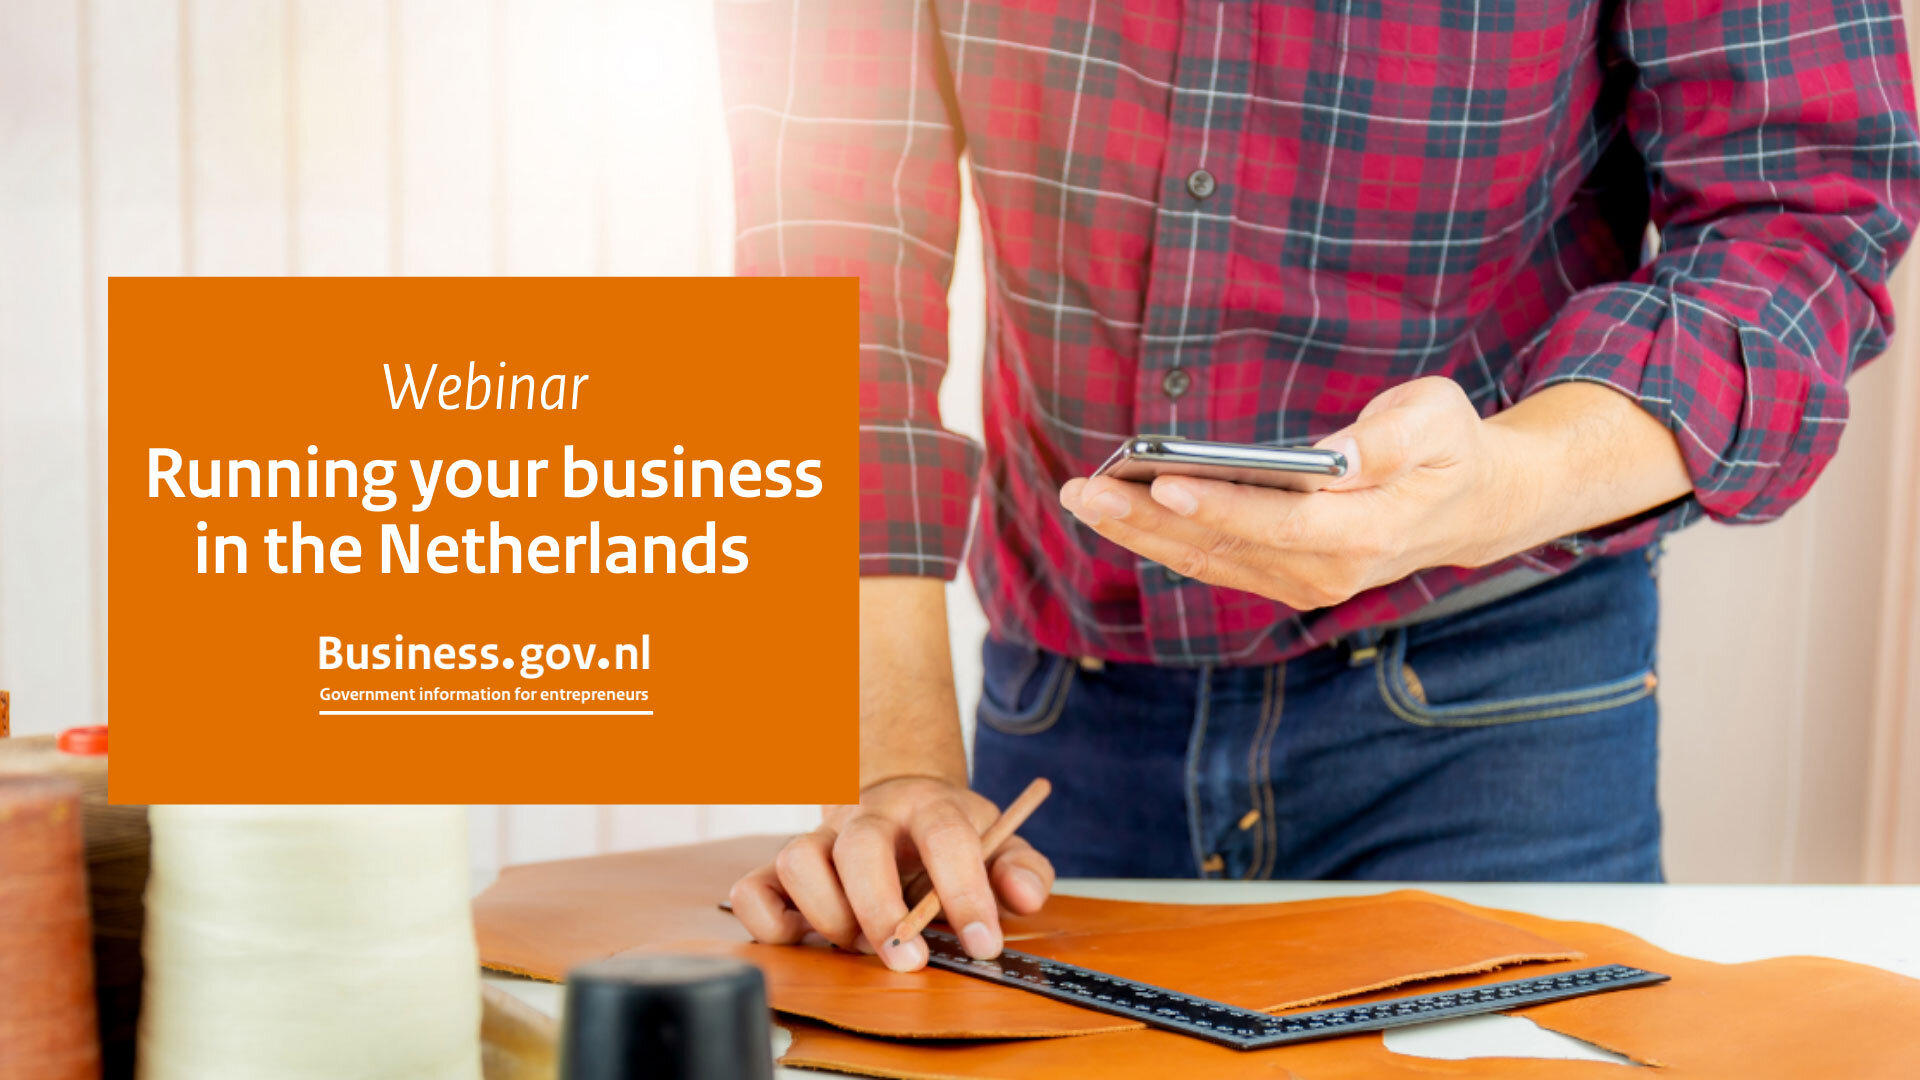 Running your business in the Netherlands